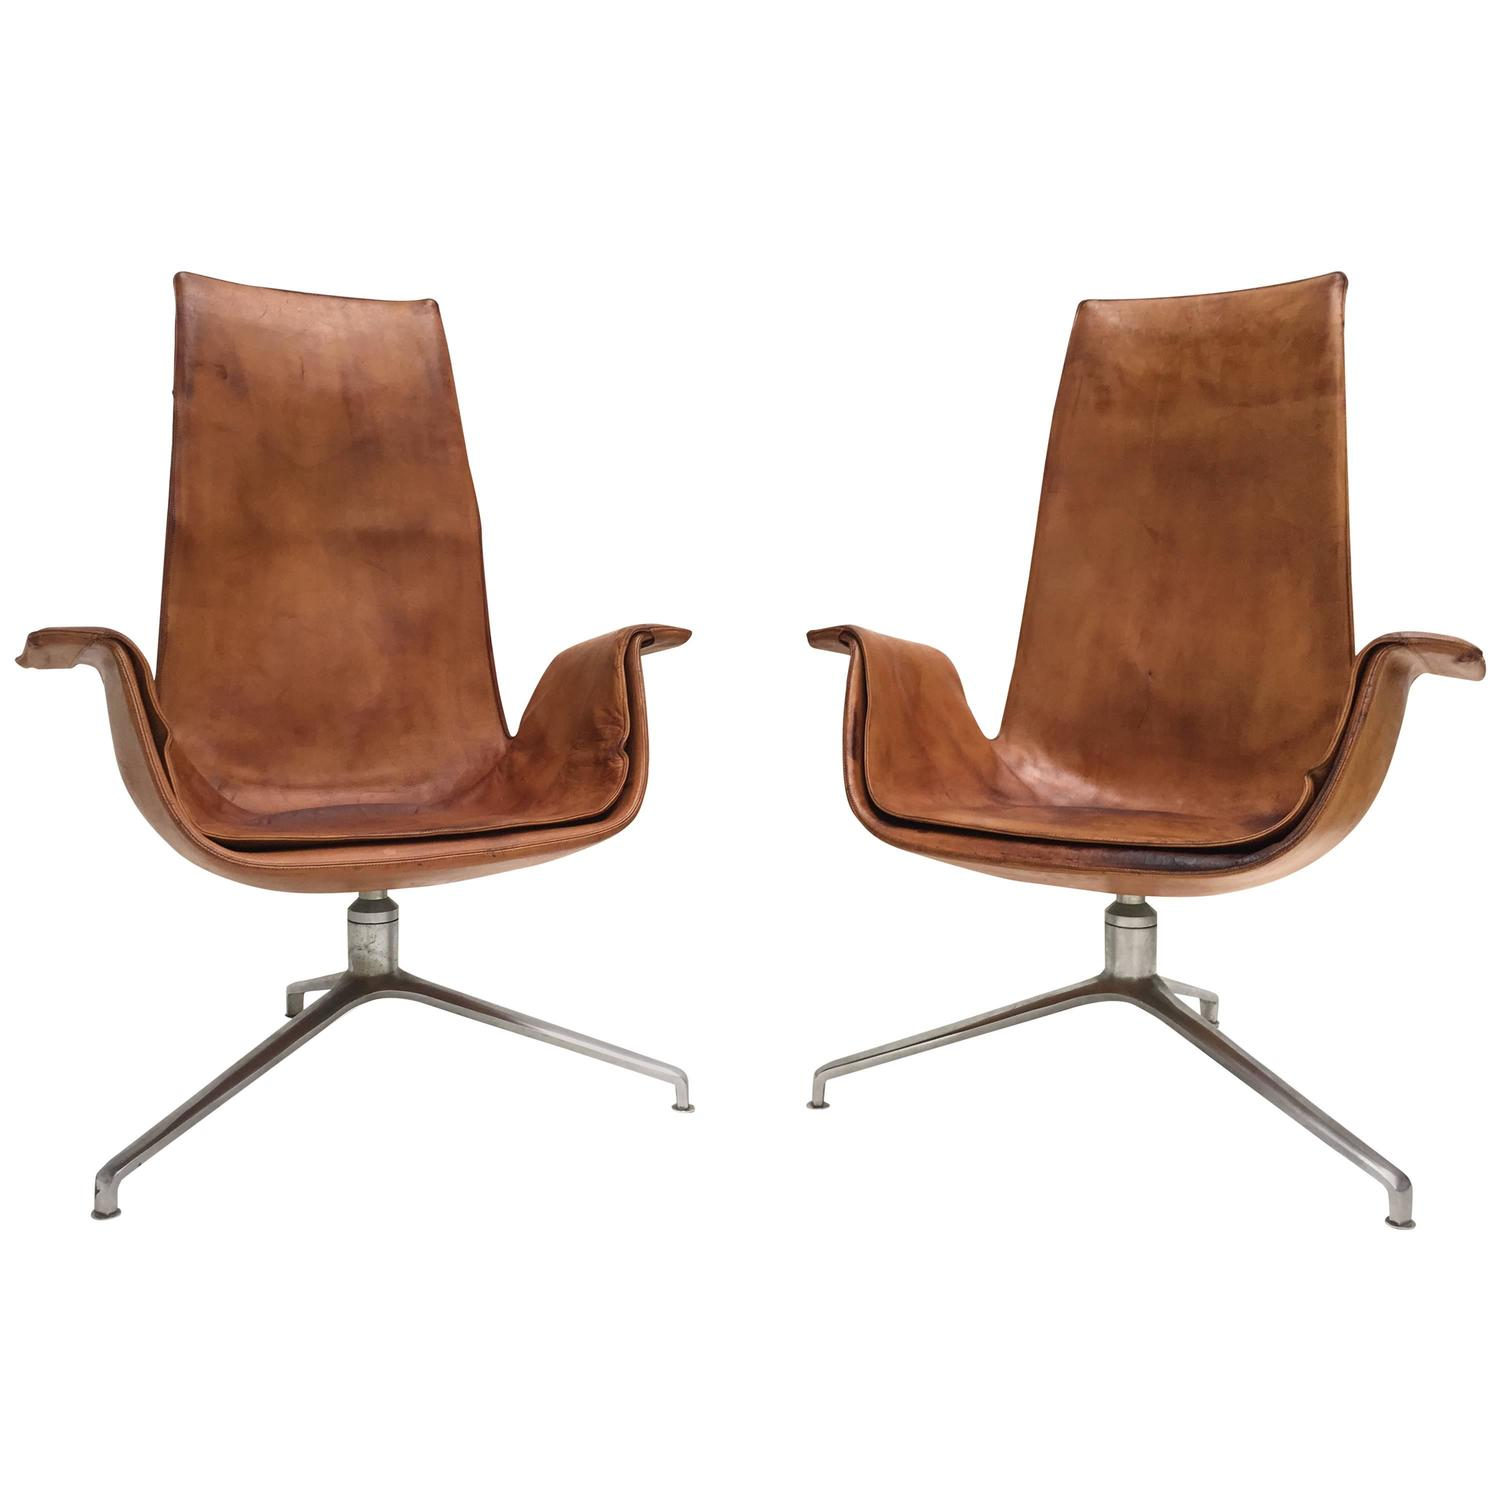 Fk 6725 tulip chairs by preben fabricius and j rgen kastholm for alfred kill 1964 for sale at - Tulip chairs for sale ...